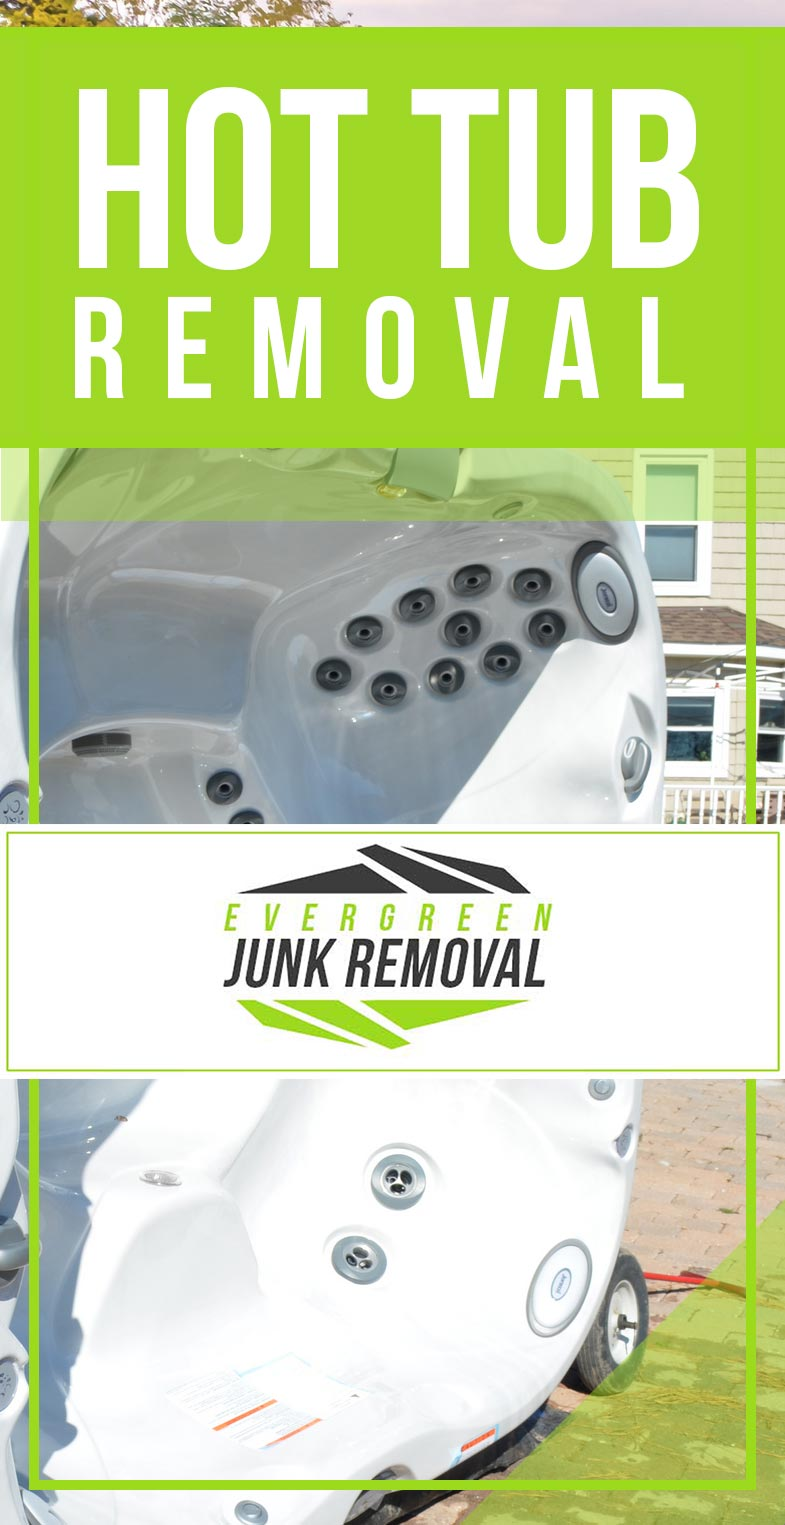 Fridley Hot Tub Removal